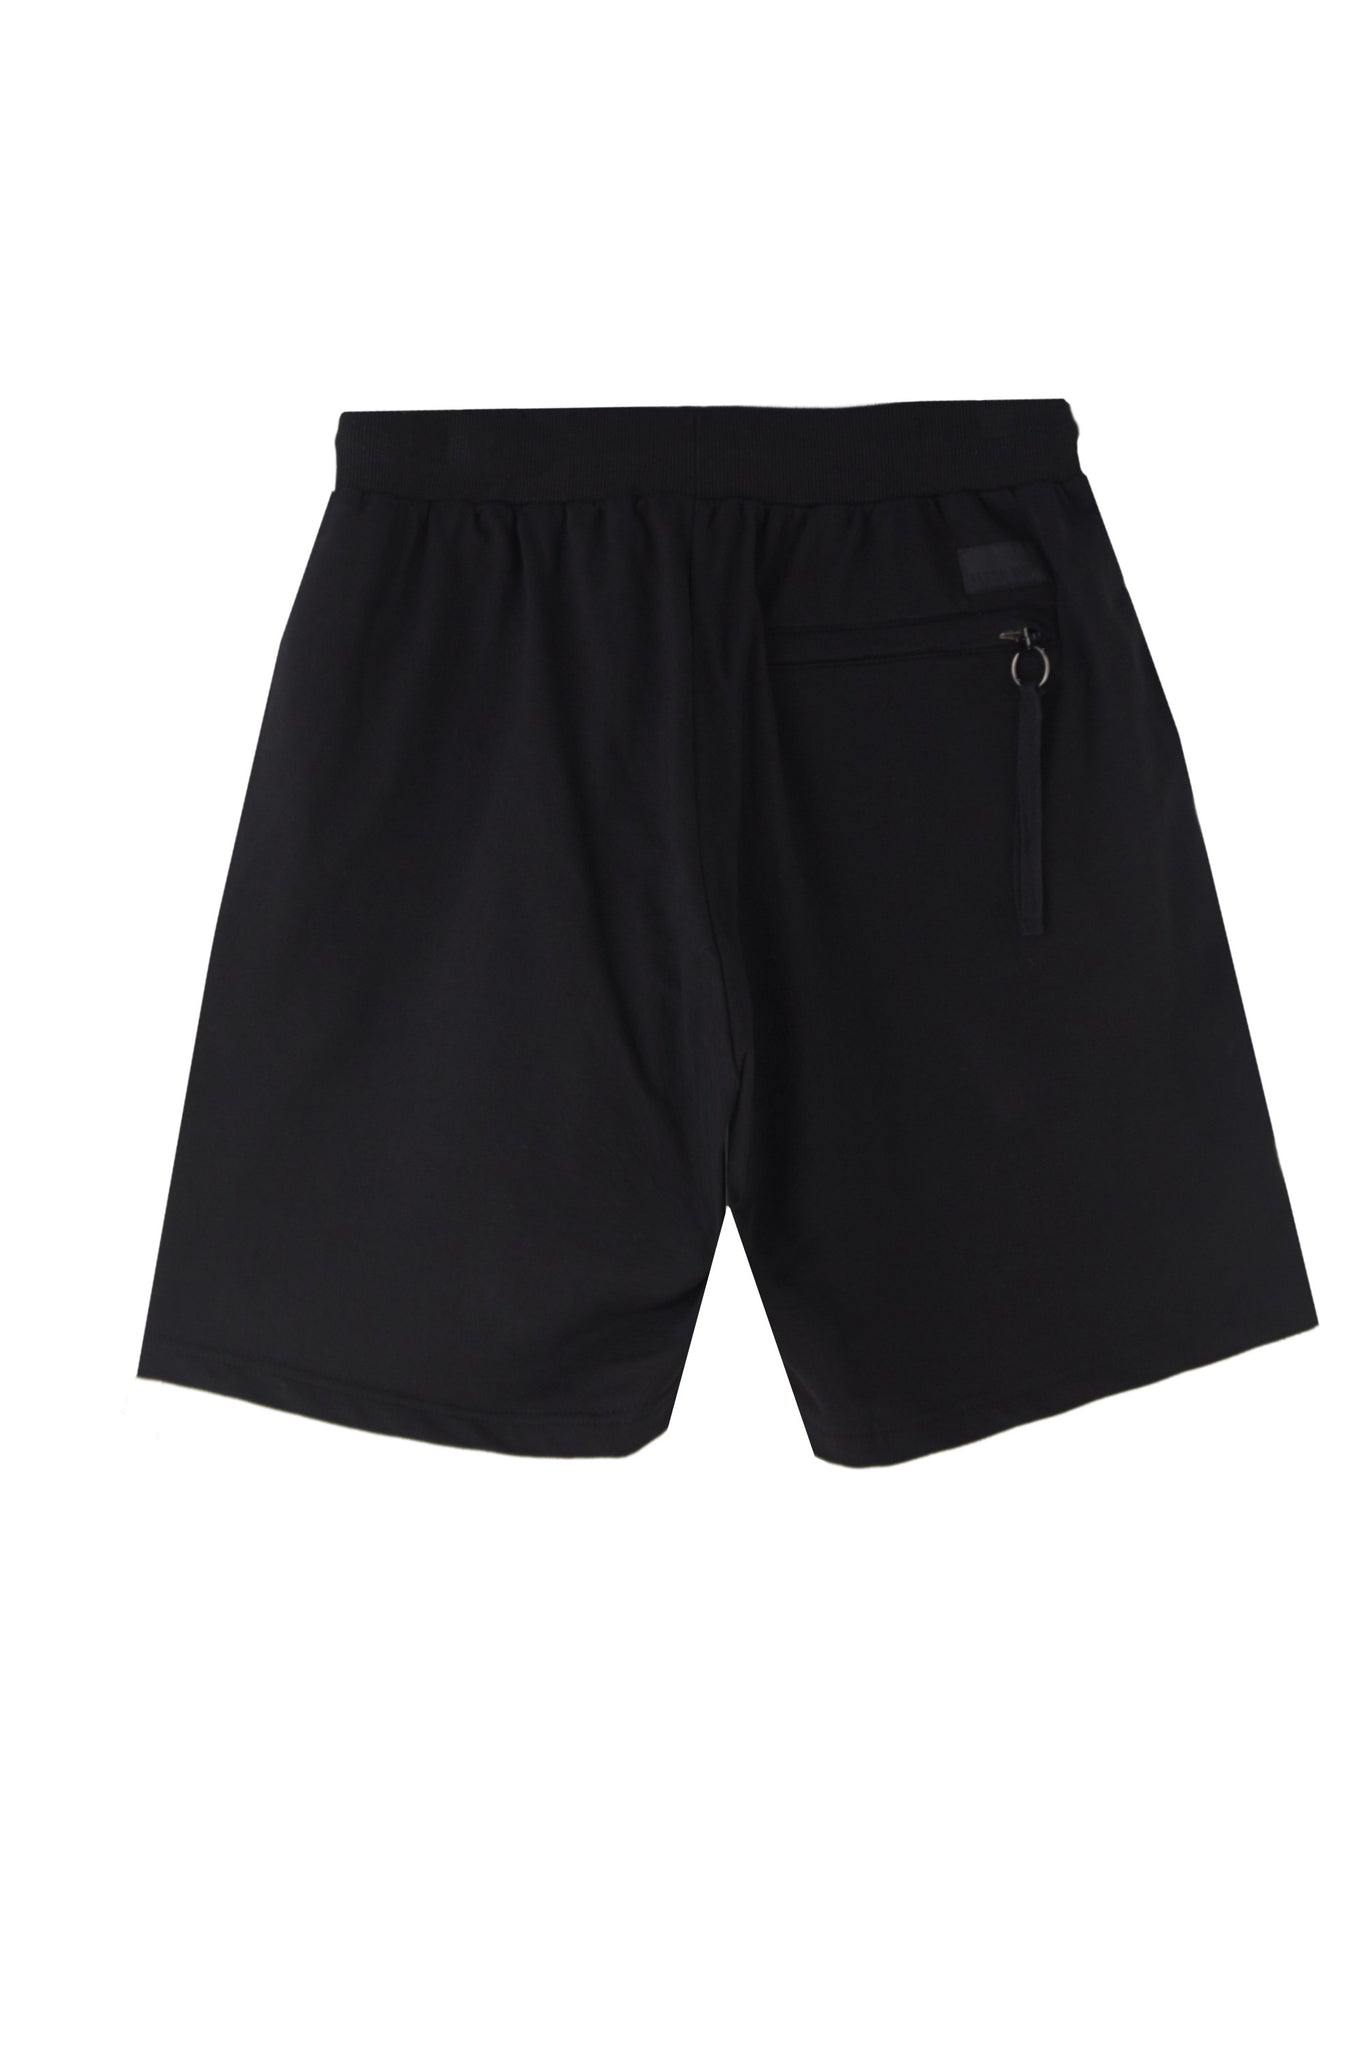 STAMP BLACK SHORTS